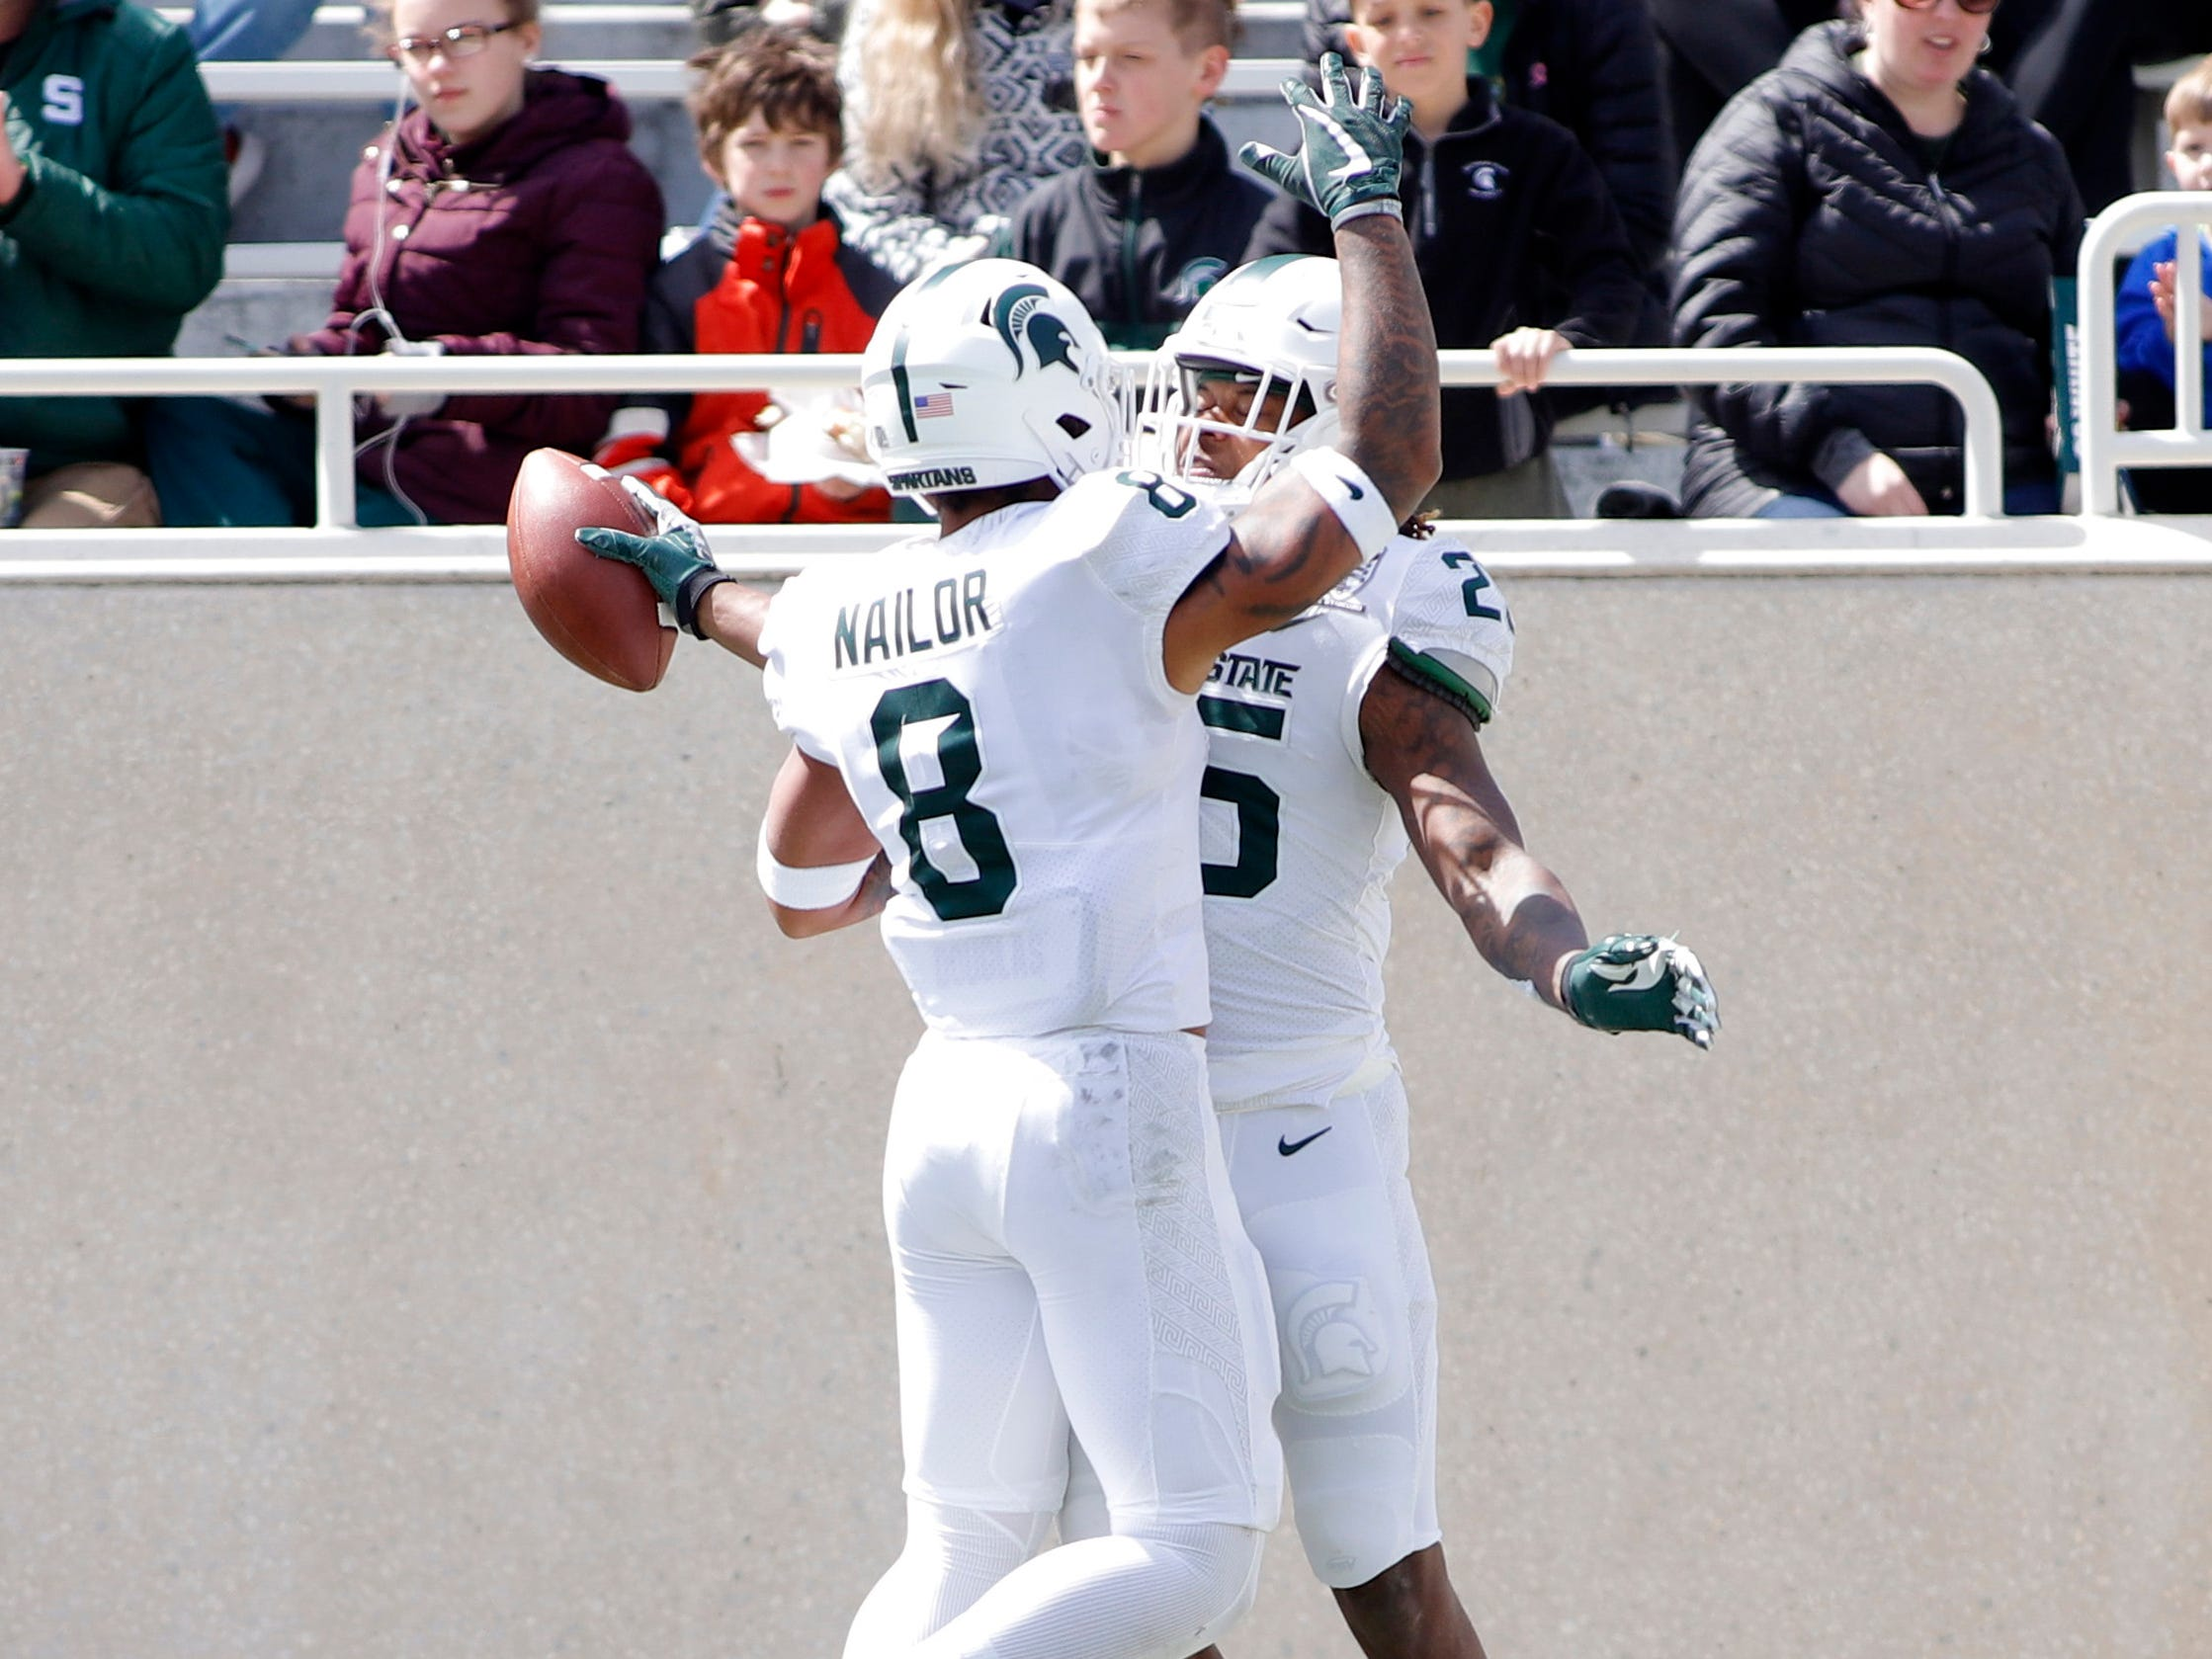 Michigan State receivers Darrell Stewart Jr., right, and Jalen Nailor (8) celebrate Stewart's touchdown during an NCAA college football spring scrimmage game, Saturday, April 13, 2019, in East Lansing, Mich. (AP Photo/Al Goldis)